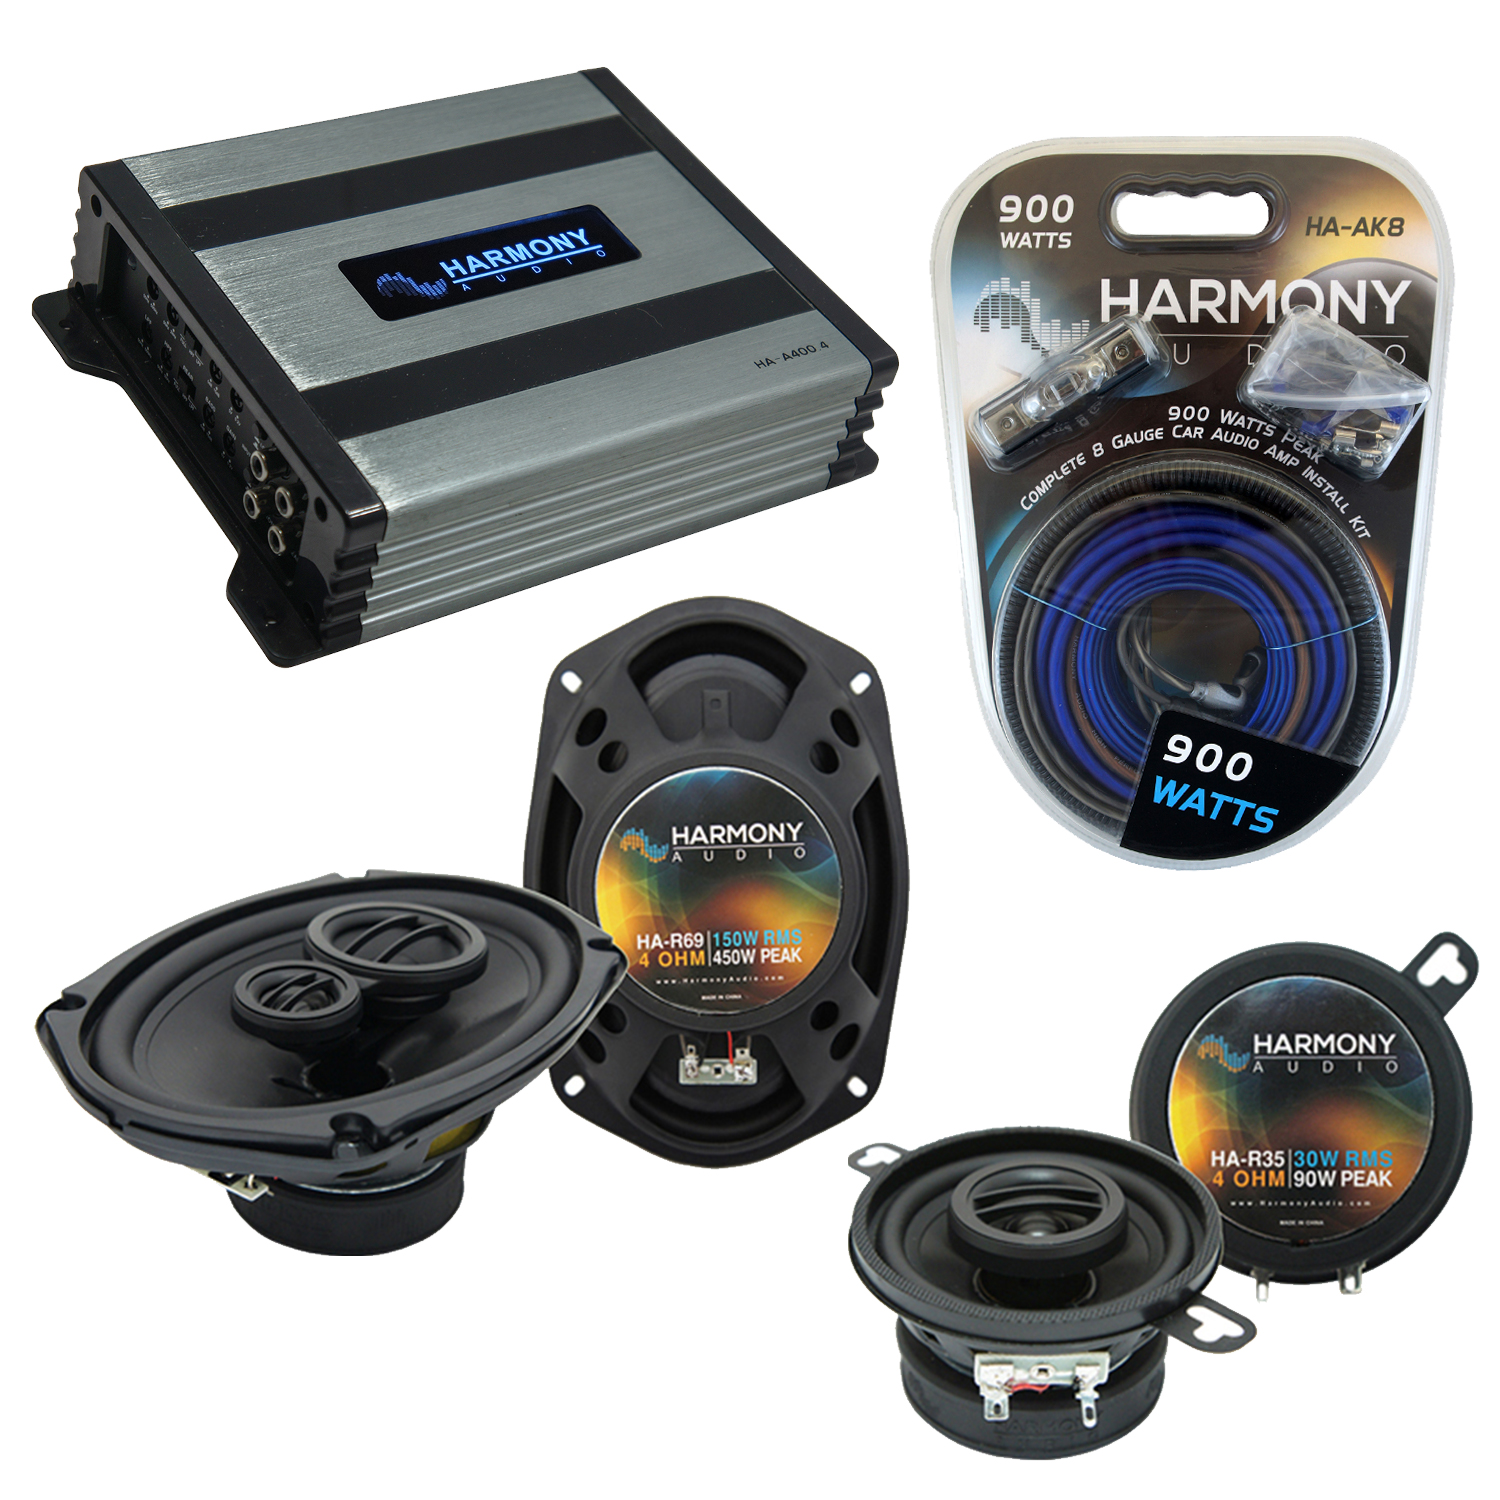 Compatible with Dodge Aspen 1976-1980 Factory Speaker Replacement Harmony R35 R69 & Harmony HA-A400.4 Amp